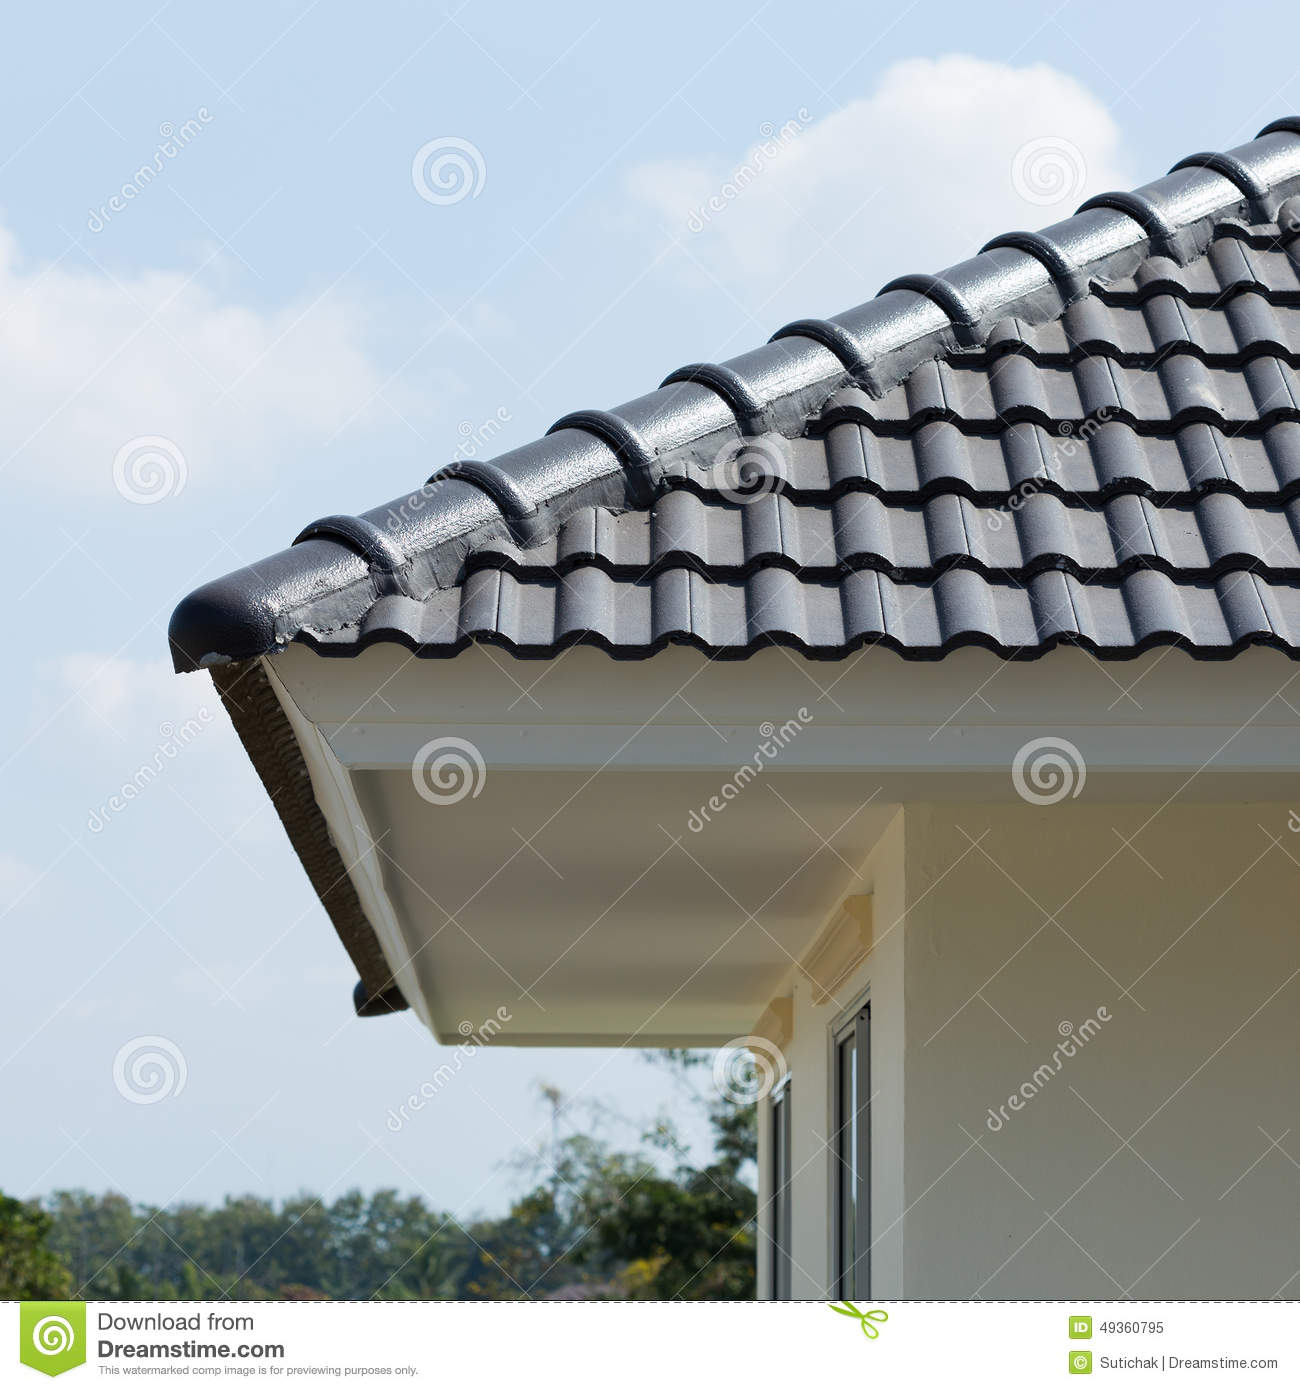 Black roof tiles on house stock photo image 49360795 for Black roof house